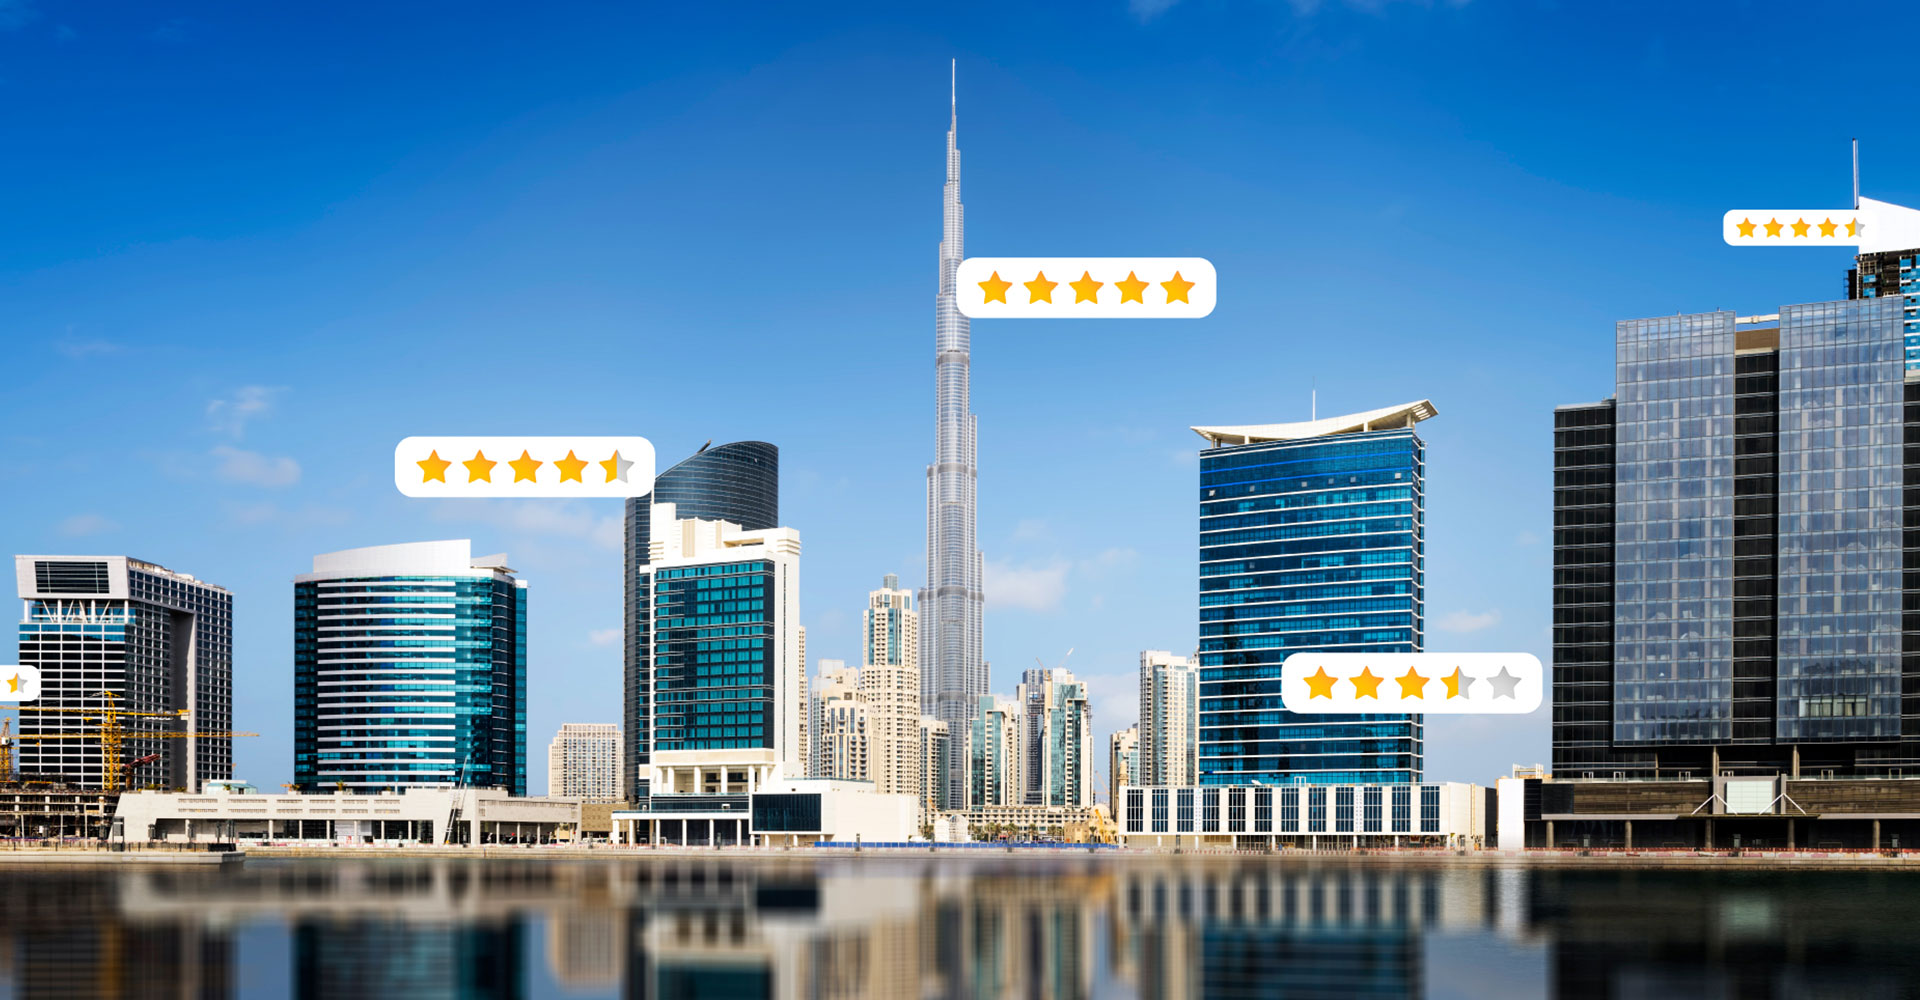 Building Inspection Dubai